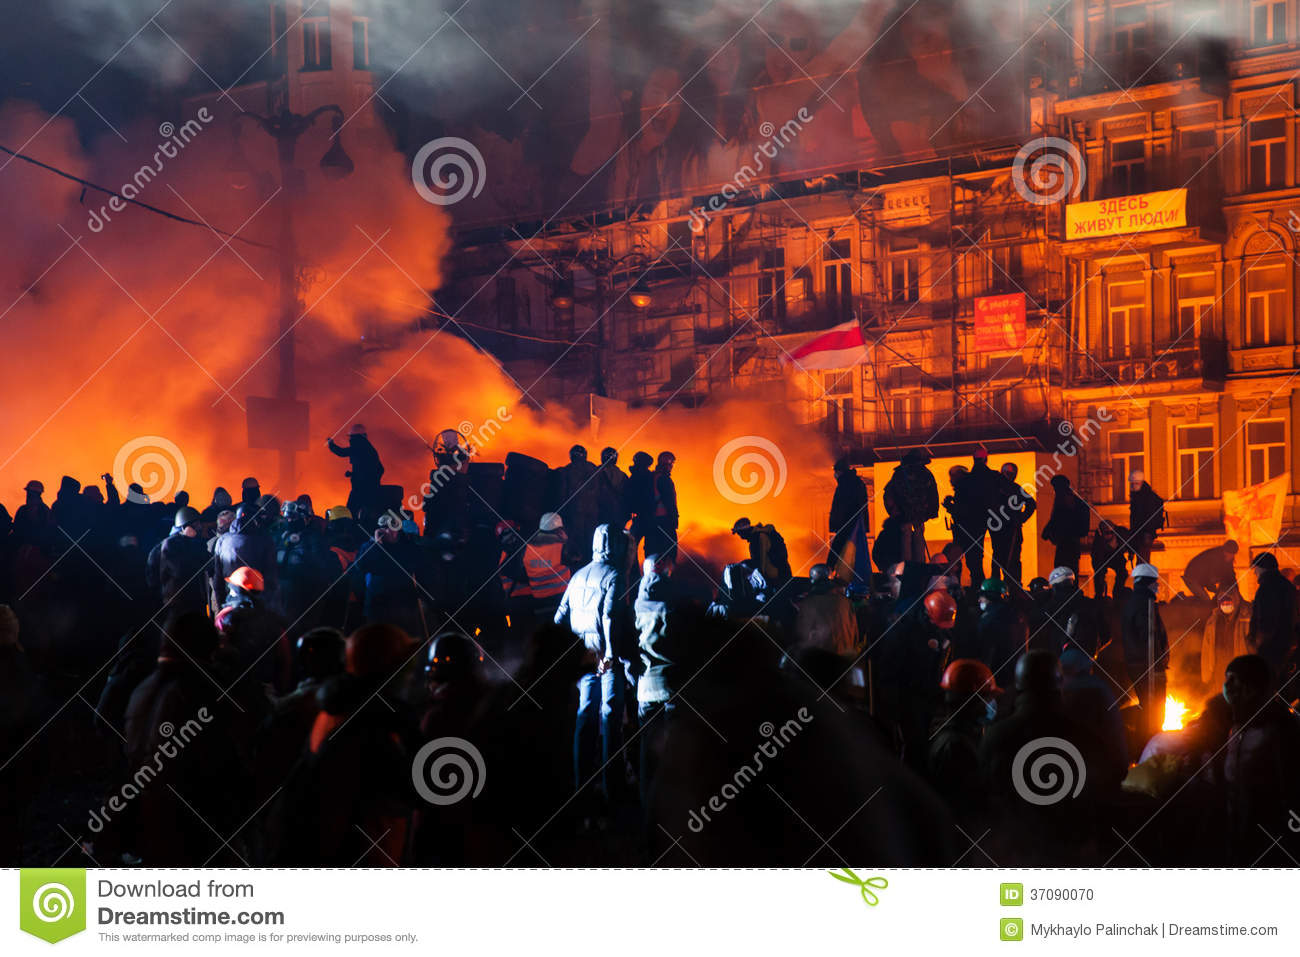 KIEV, UKRAINE - 24 janvier 2014 : Protestations anti-gouvernement de masse